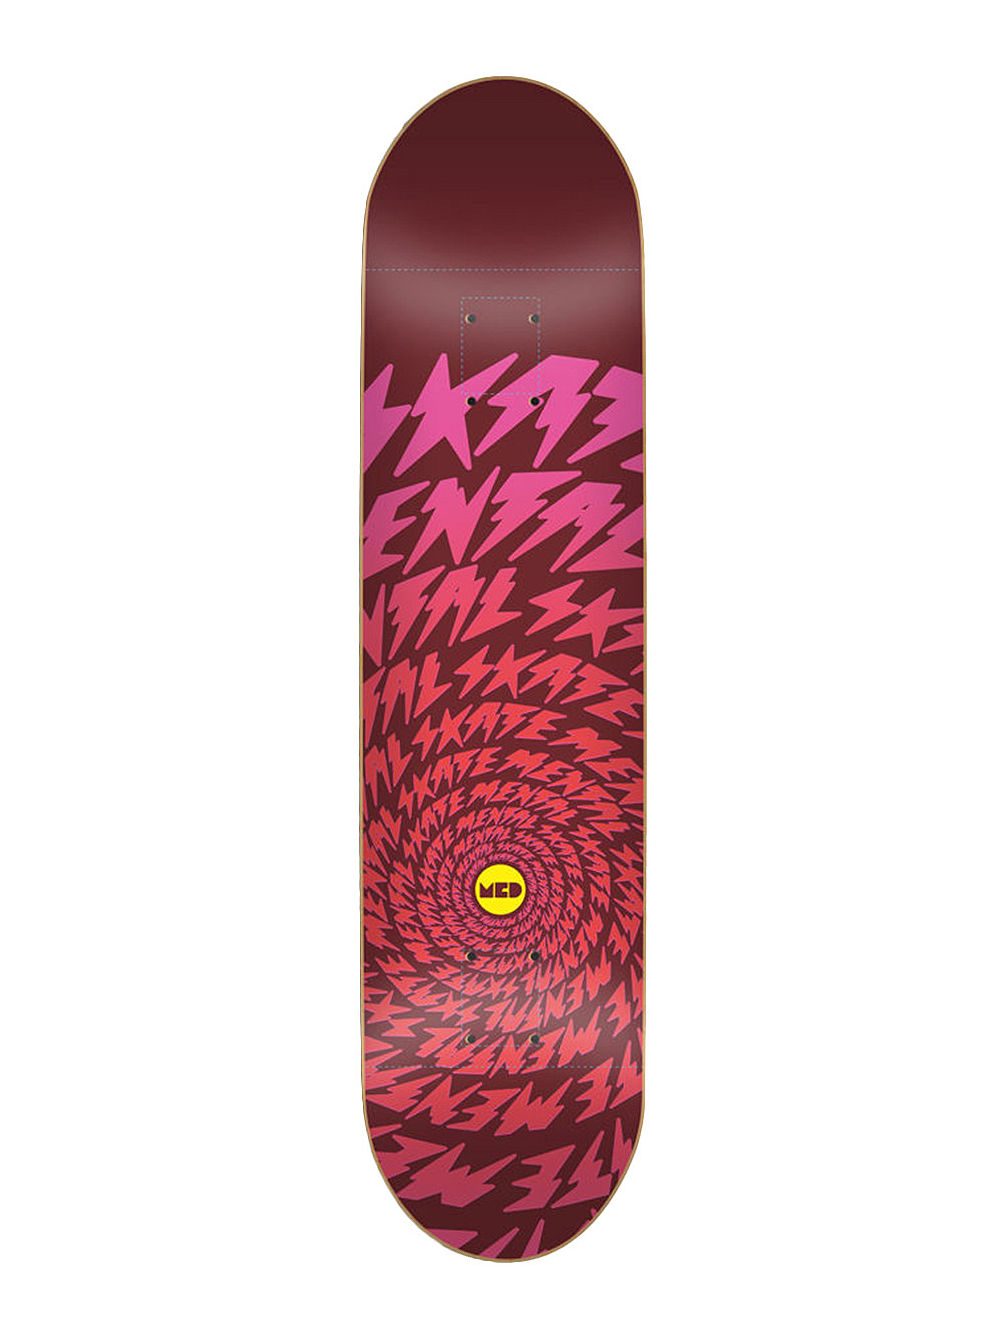 "Bolts Vortex Red 8.25"" Skate Deck"